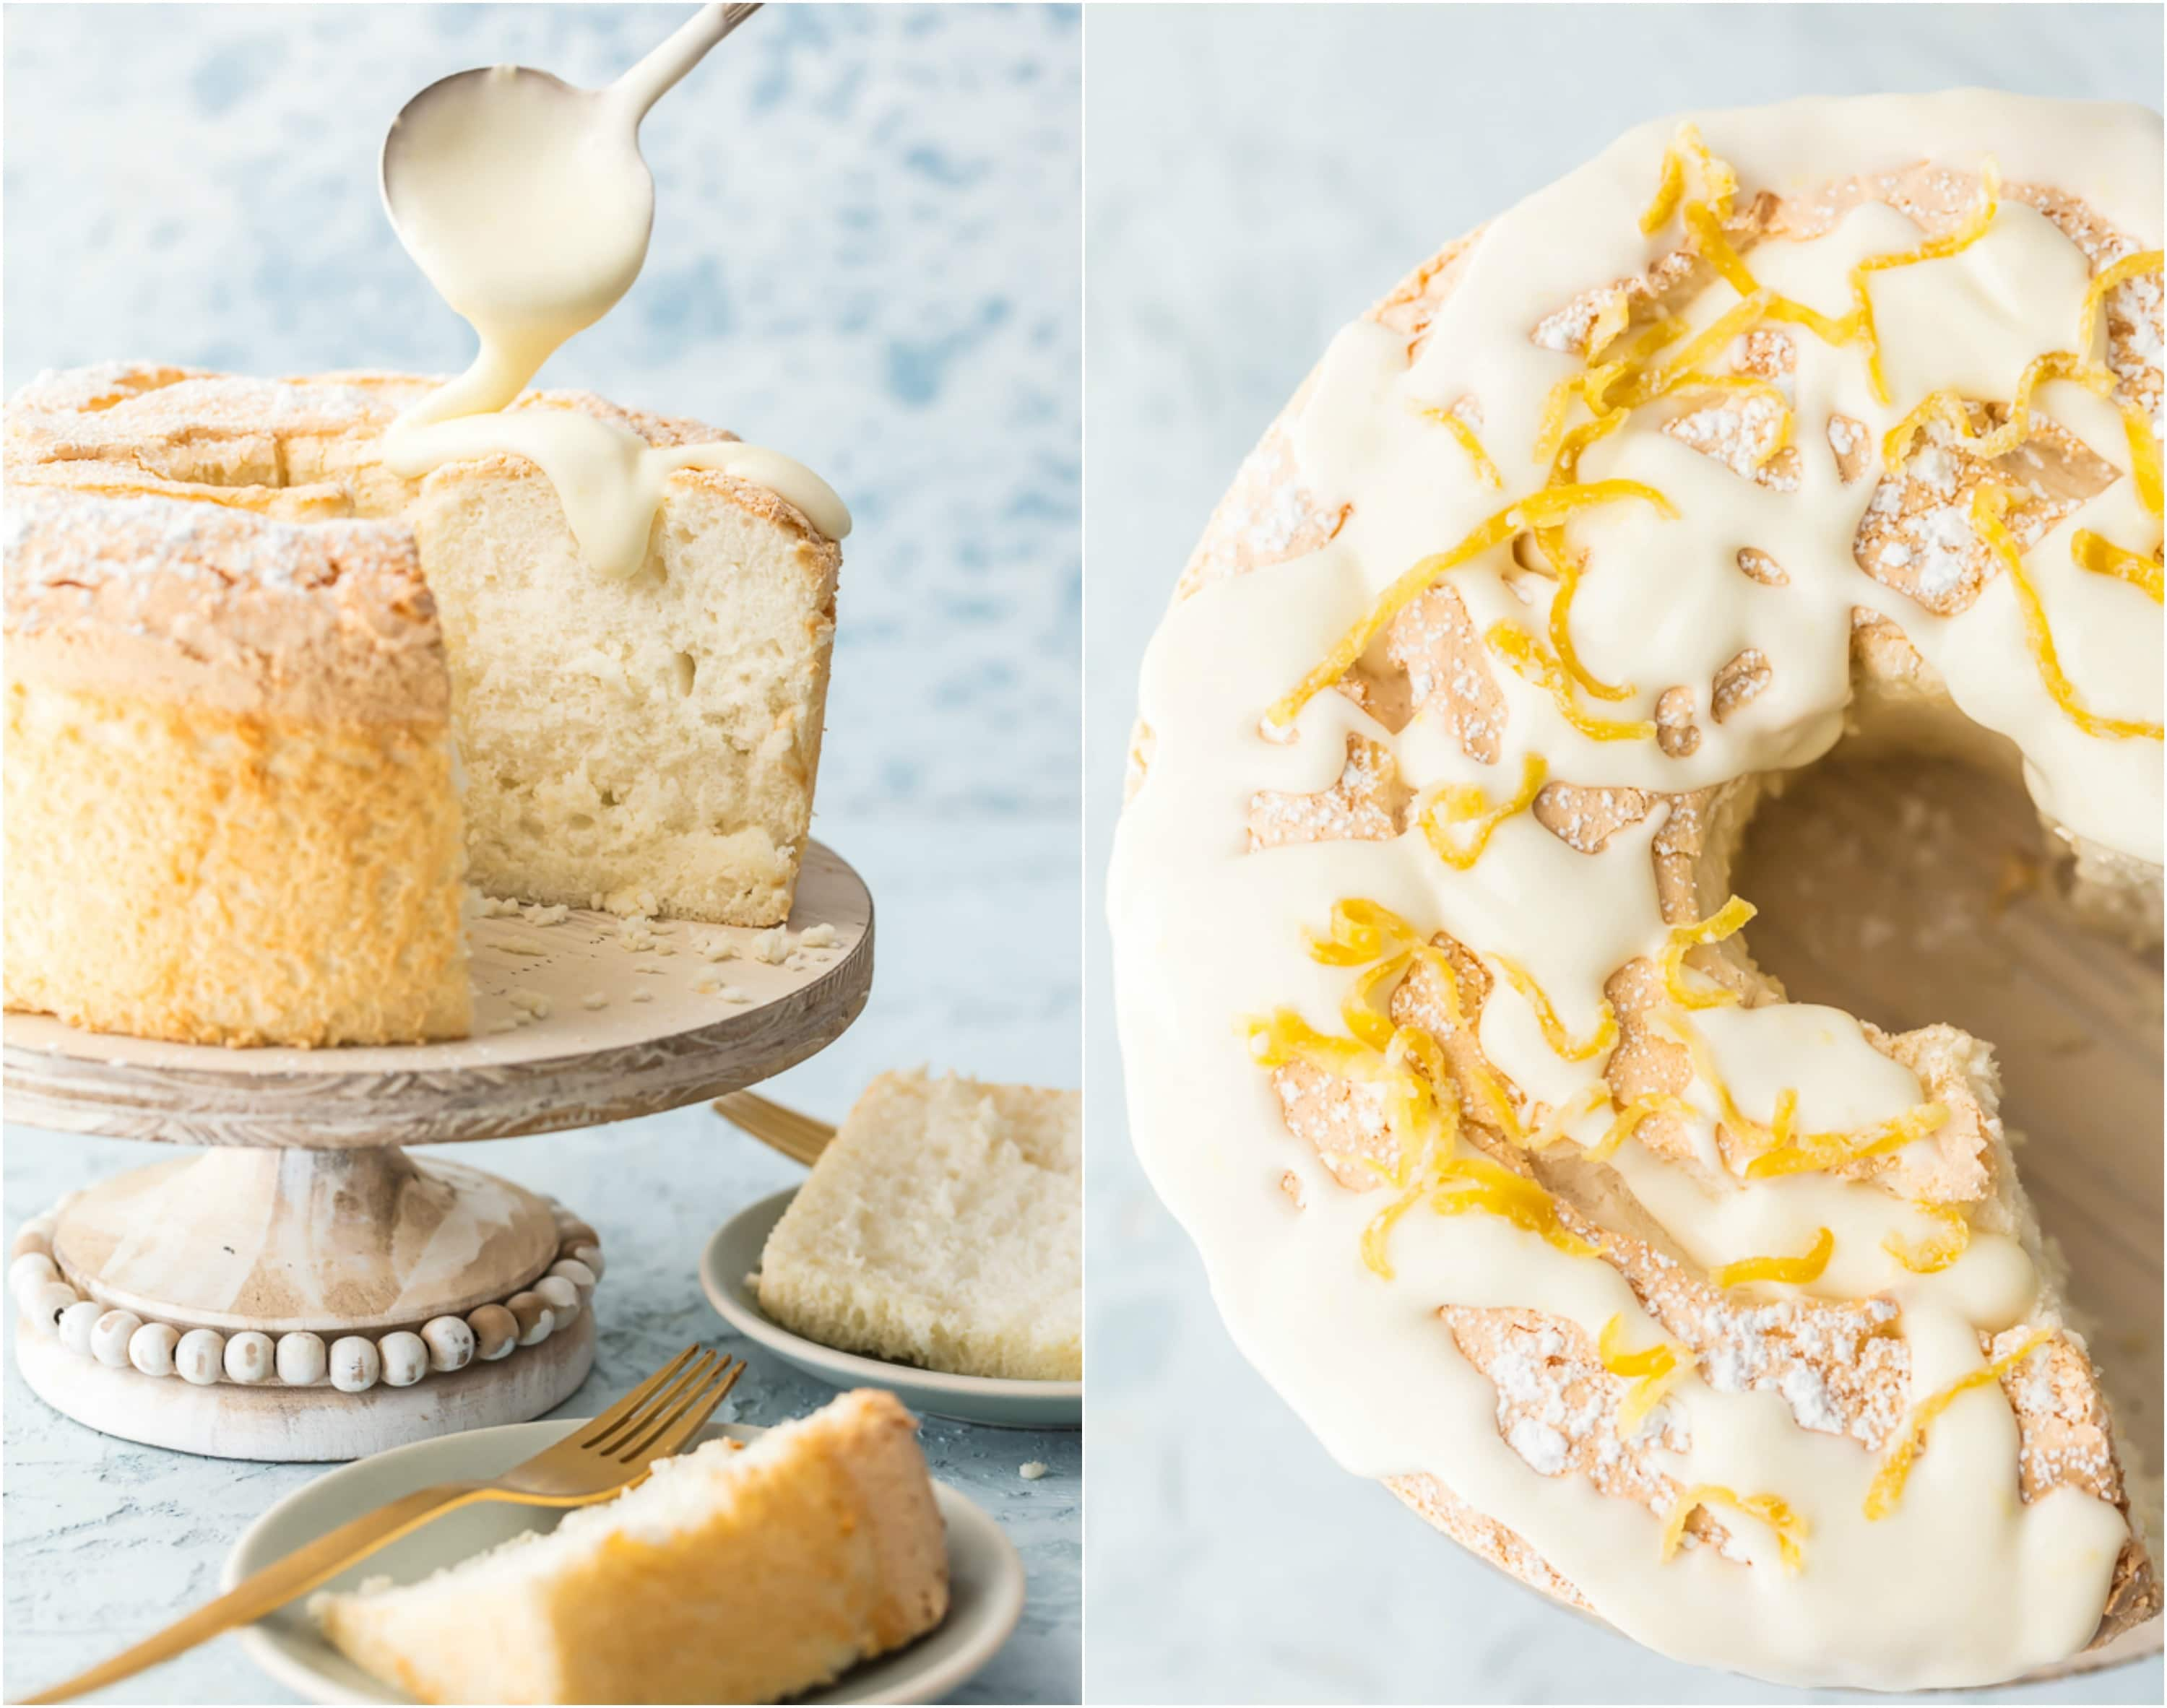 This TRULY EASY ANGEL FOOD CAKE is an absolute game changer! No more sifting flour, room temp eggs, stabilizer, cold oven, or crossing your fingers! This amazing angel food cake is totally fool proof and just as good as if you slaved all day. My mind is blown!